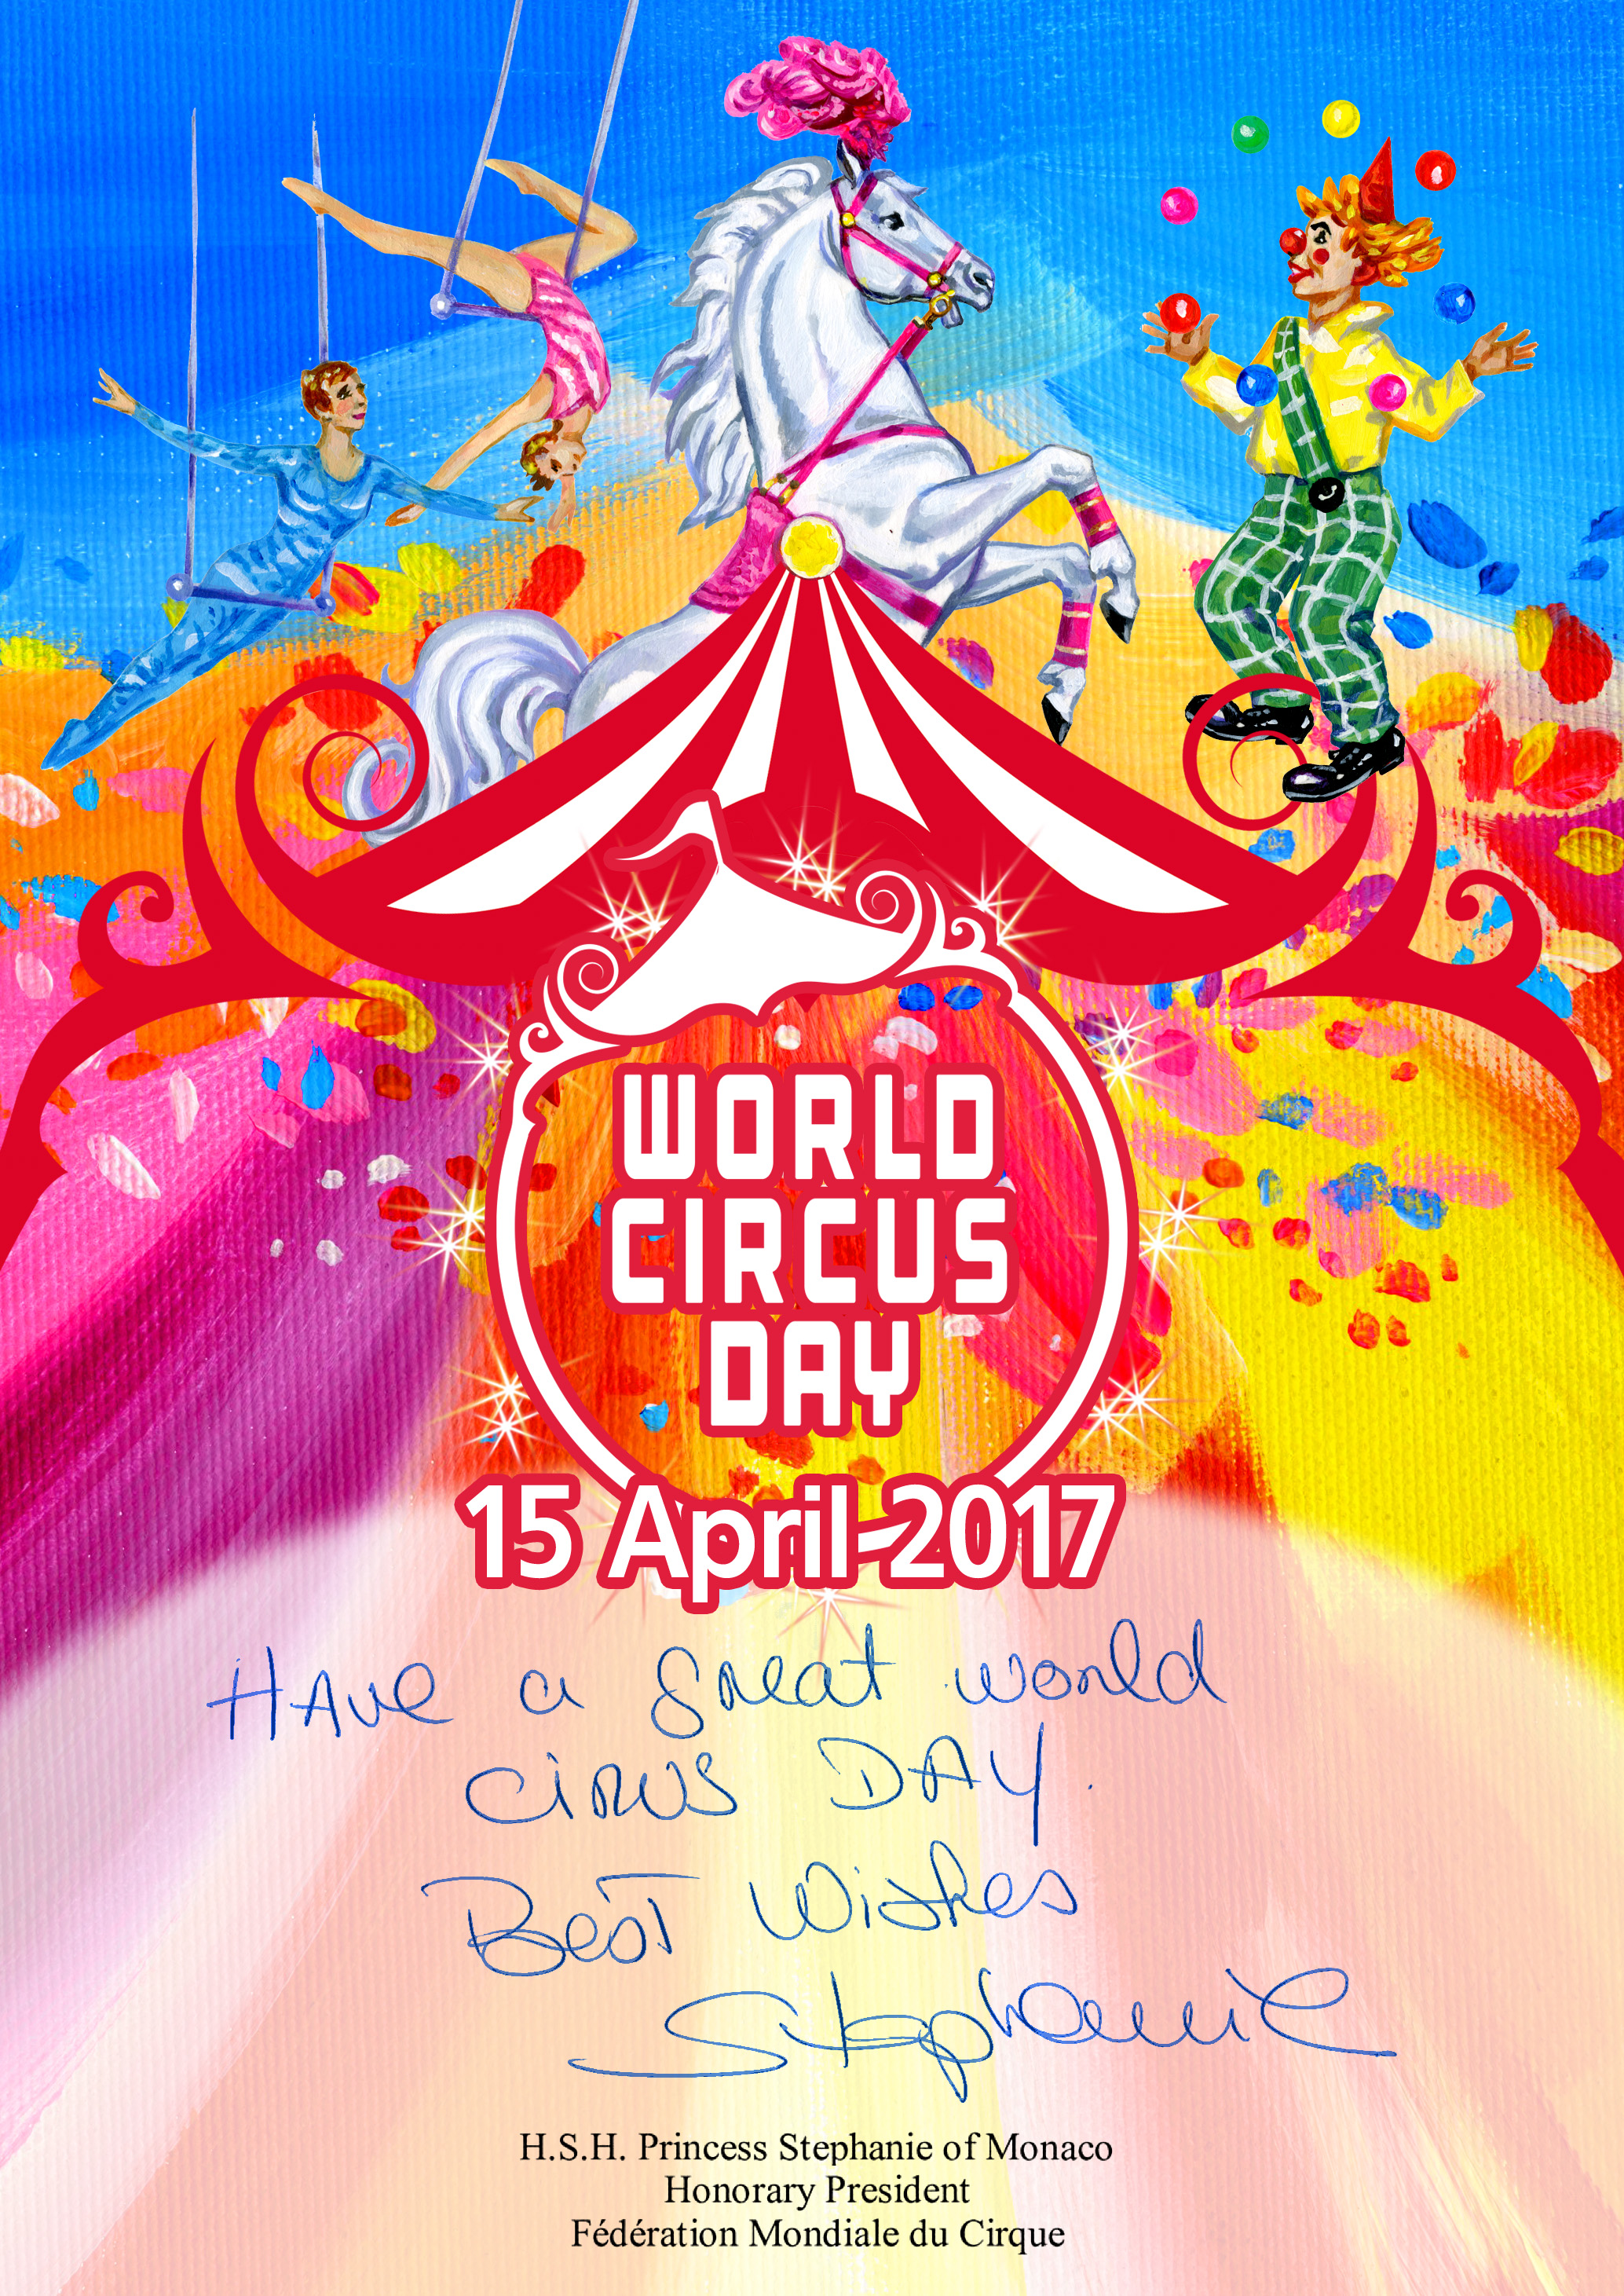 World circus day greetings from princess stephanie circus fans world circus day greetings from princess stephanie kristyandbryce Images